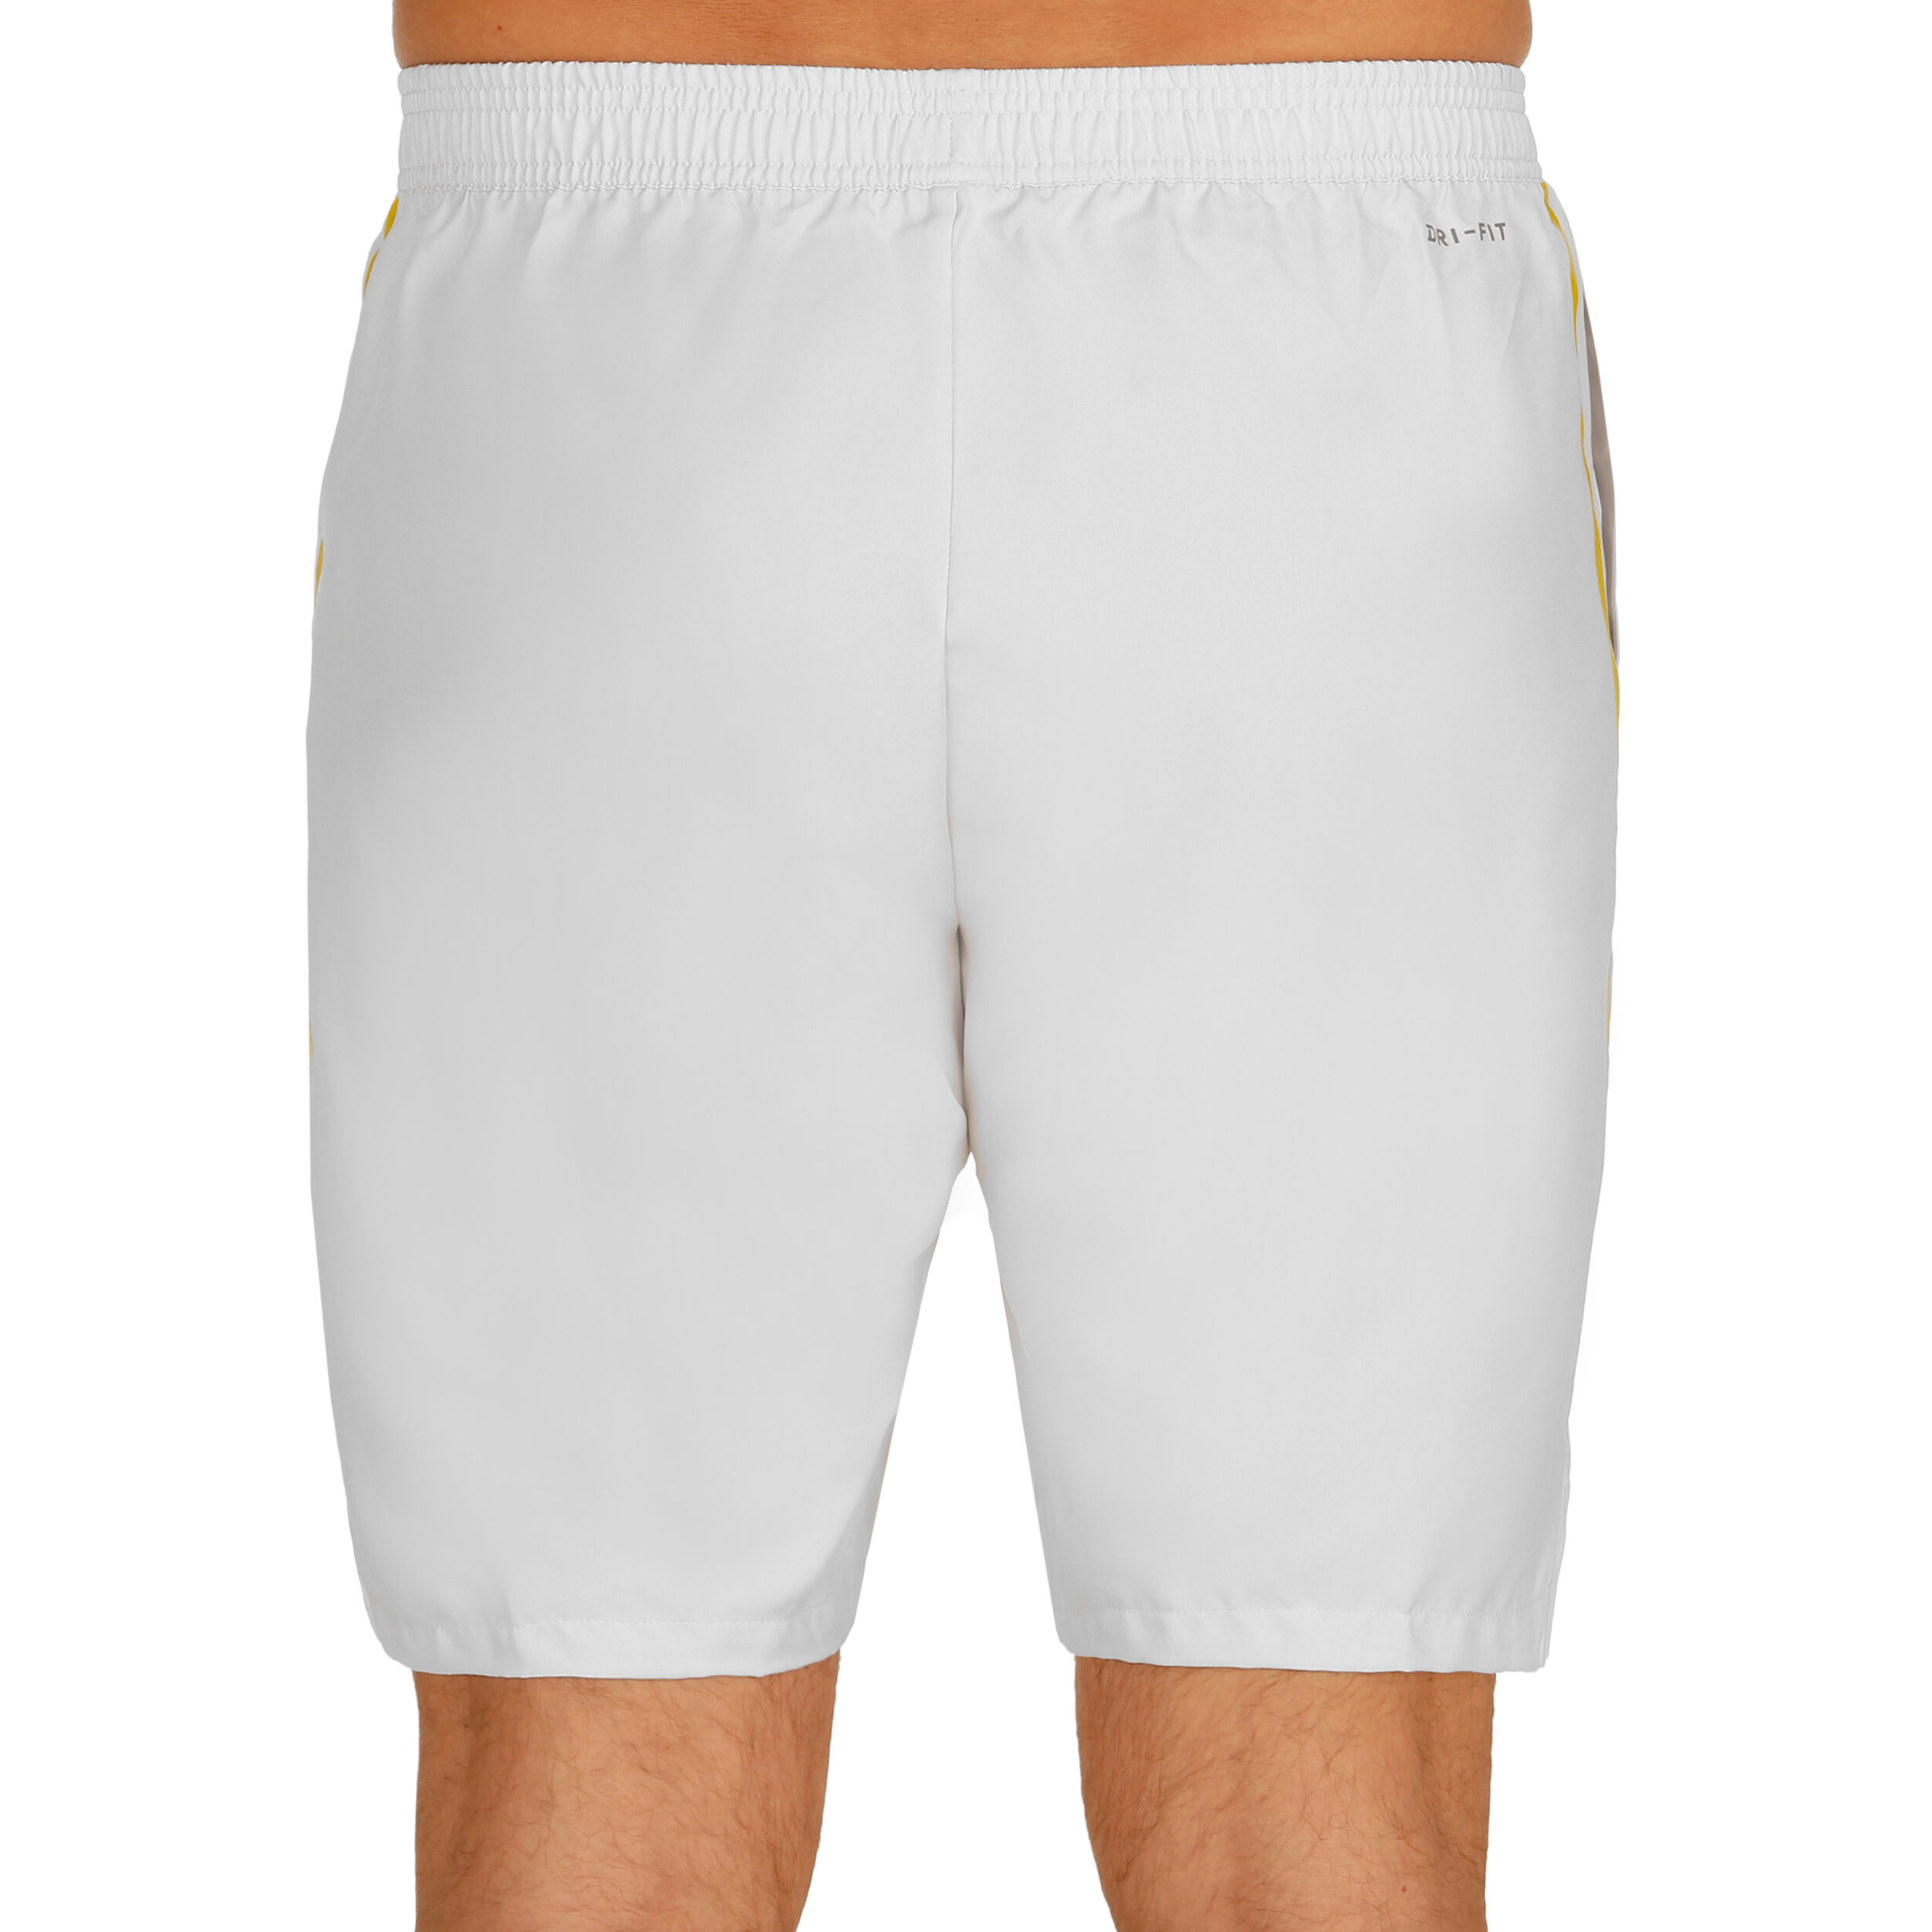 Nike Men's Court Flex Ace Tennis Shorts für Herren (LAVA